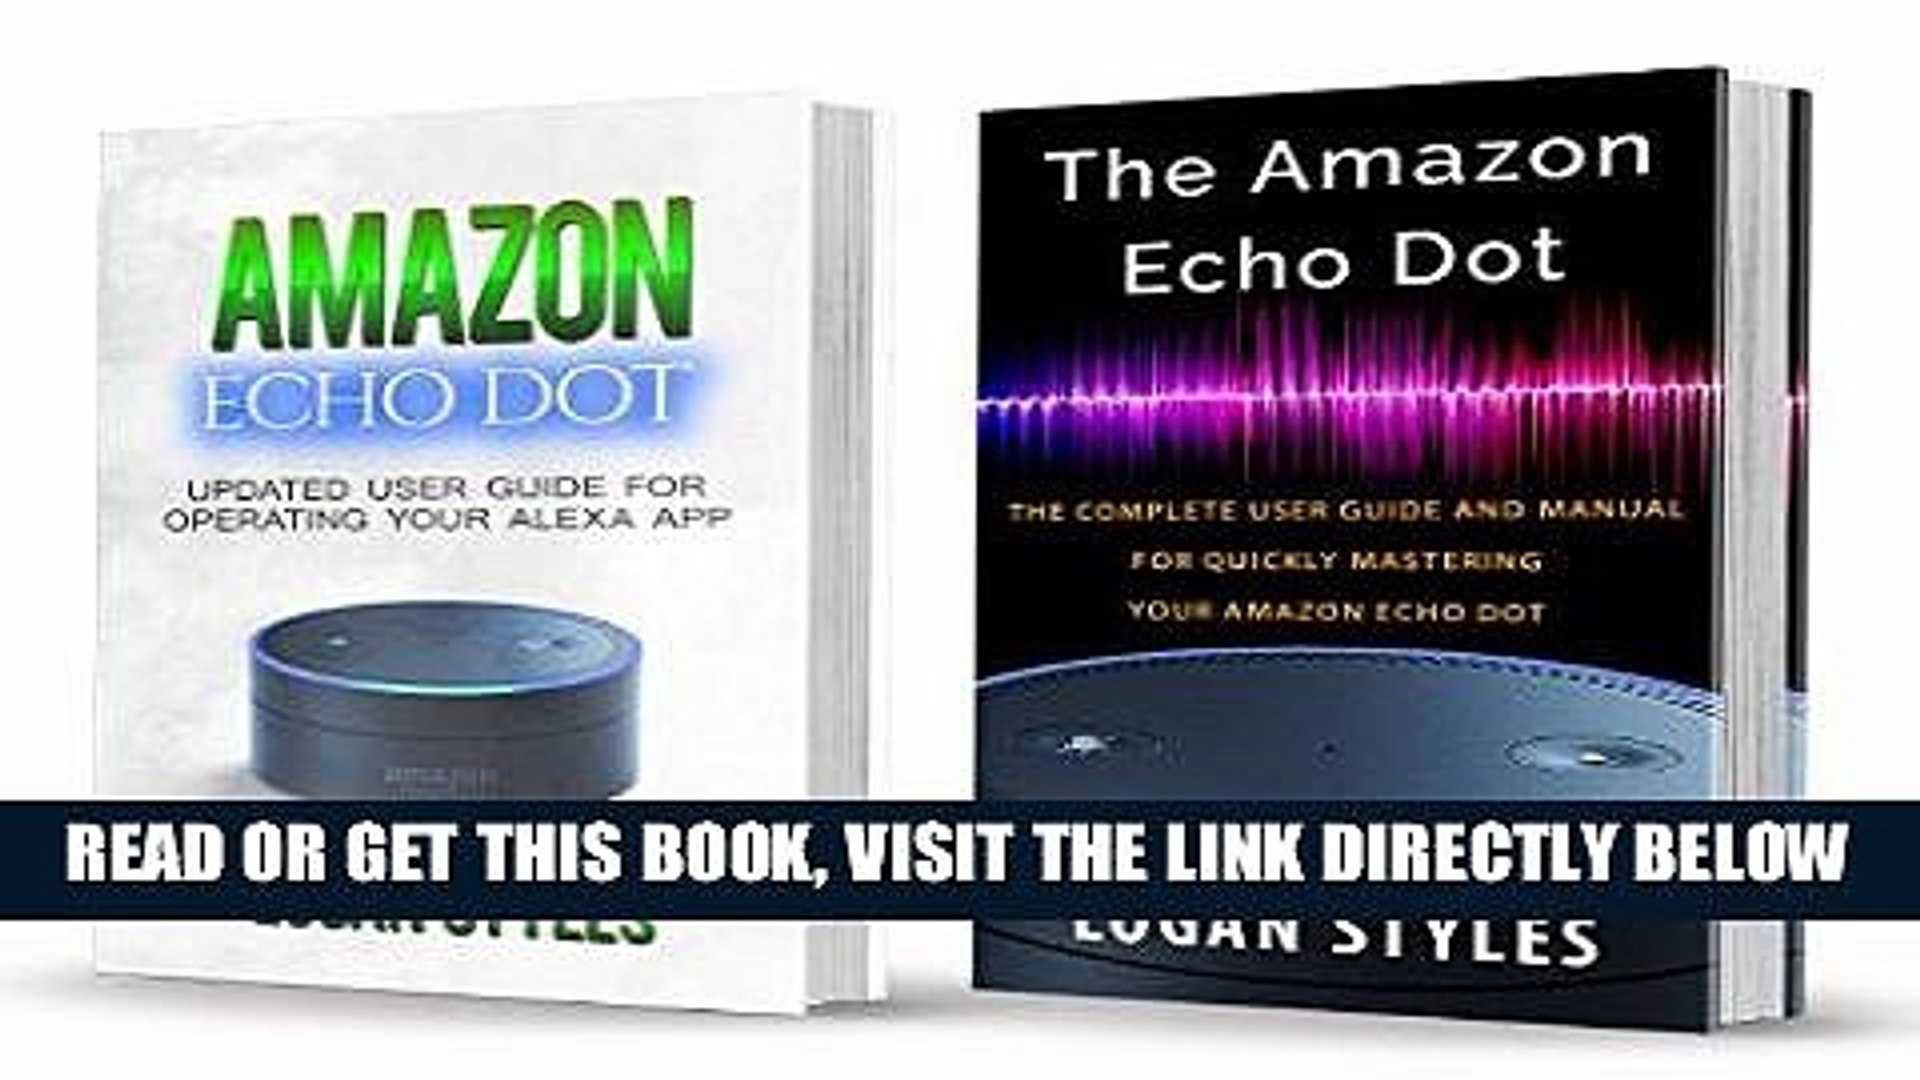 [READ] EBOOK Amazon Echo Dot: 2 Manuscripts-Amazon Echo Dot User Guide and Amazon Echo Dot: